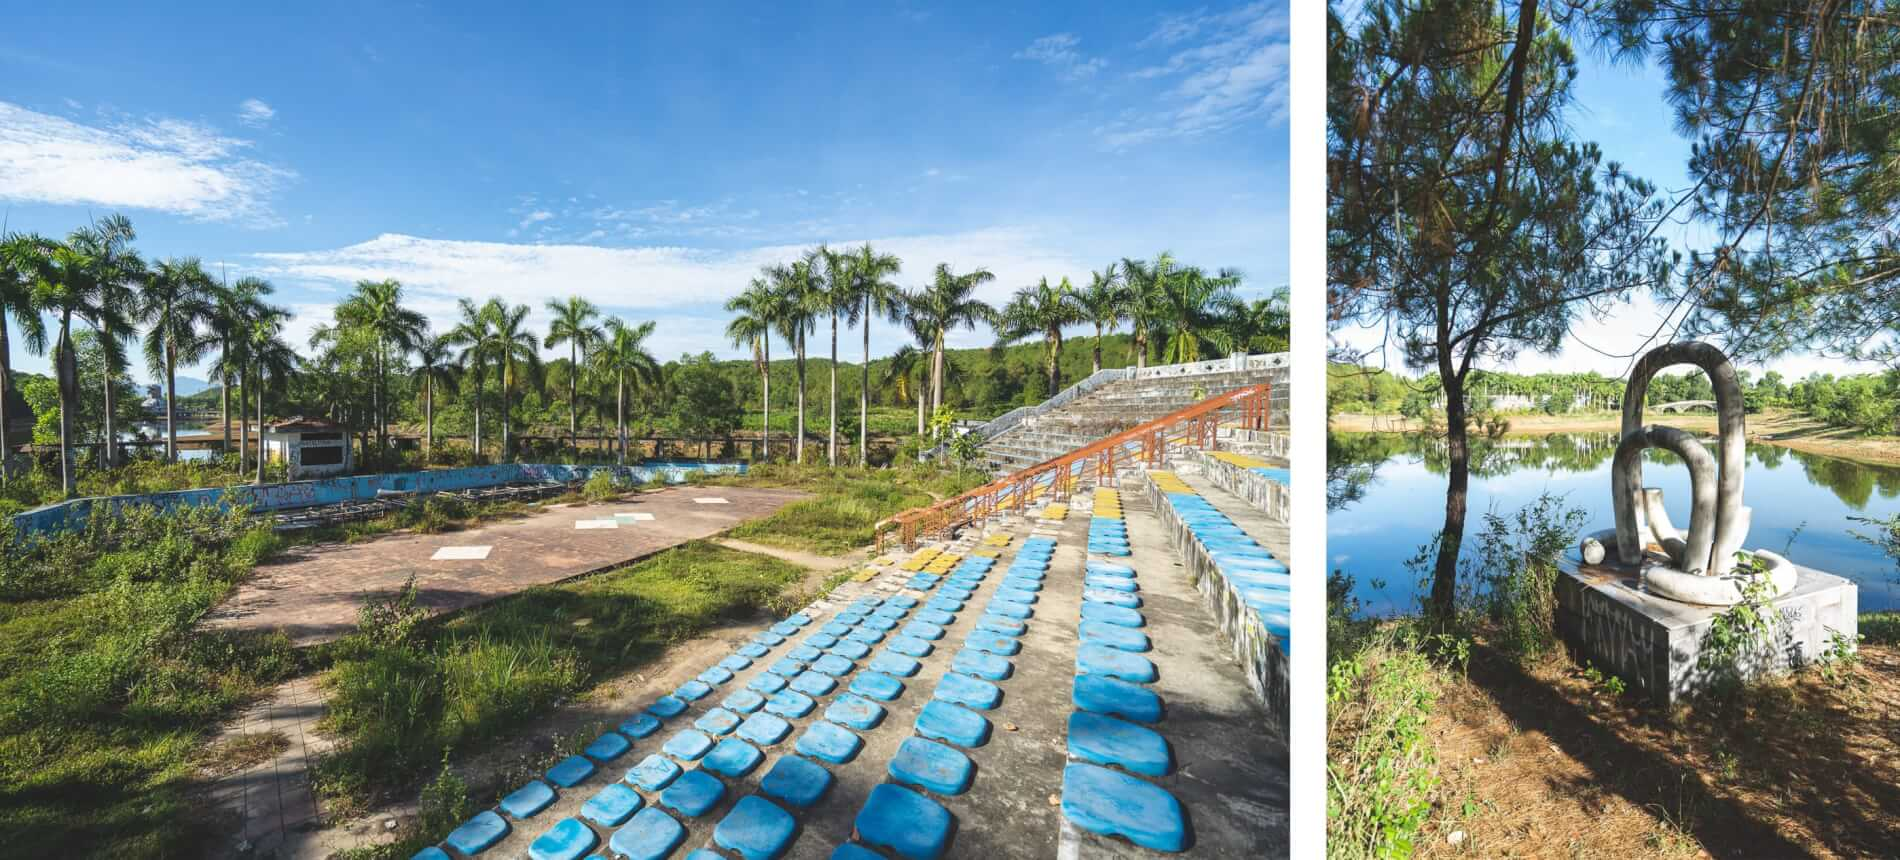 Water Park Guards - Hue's Abandoned Water Park